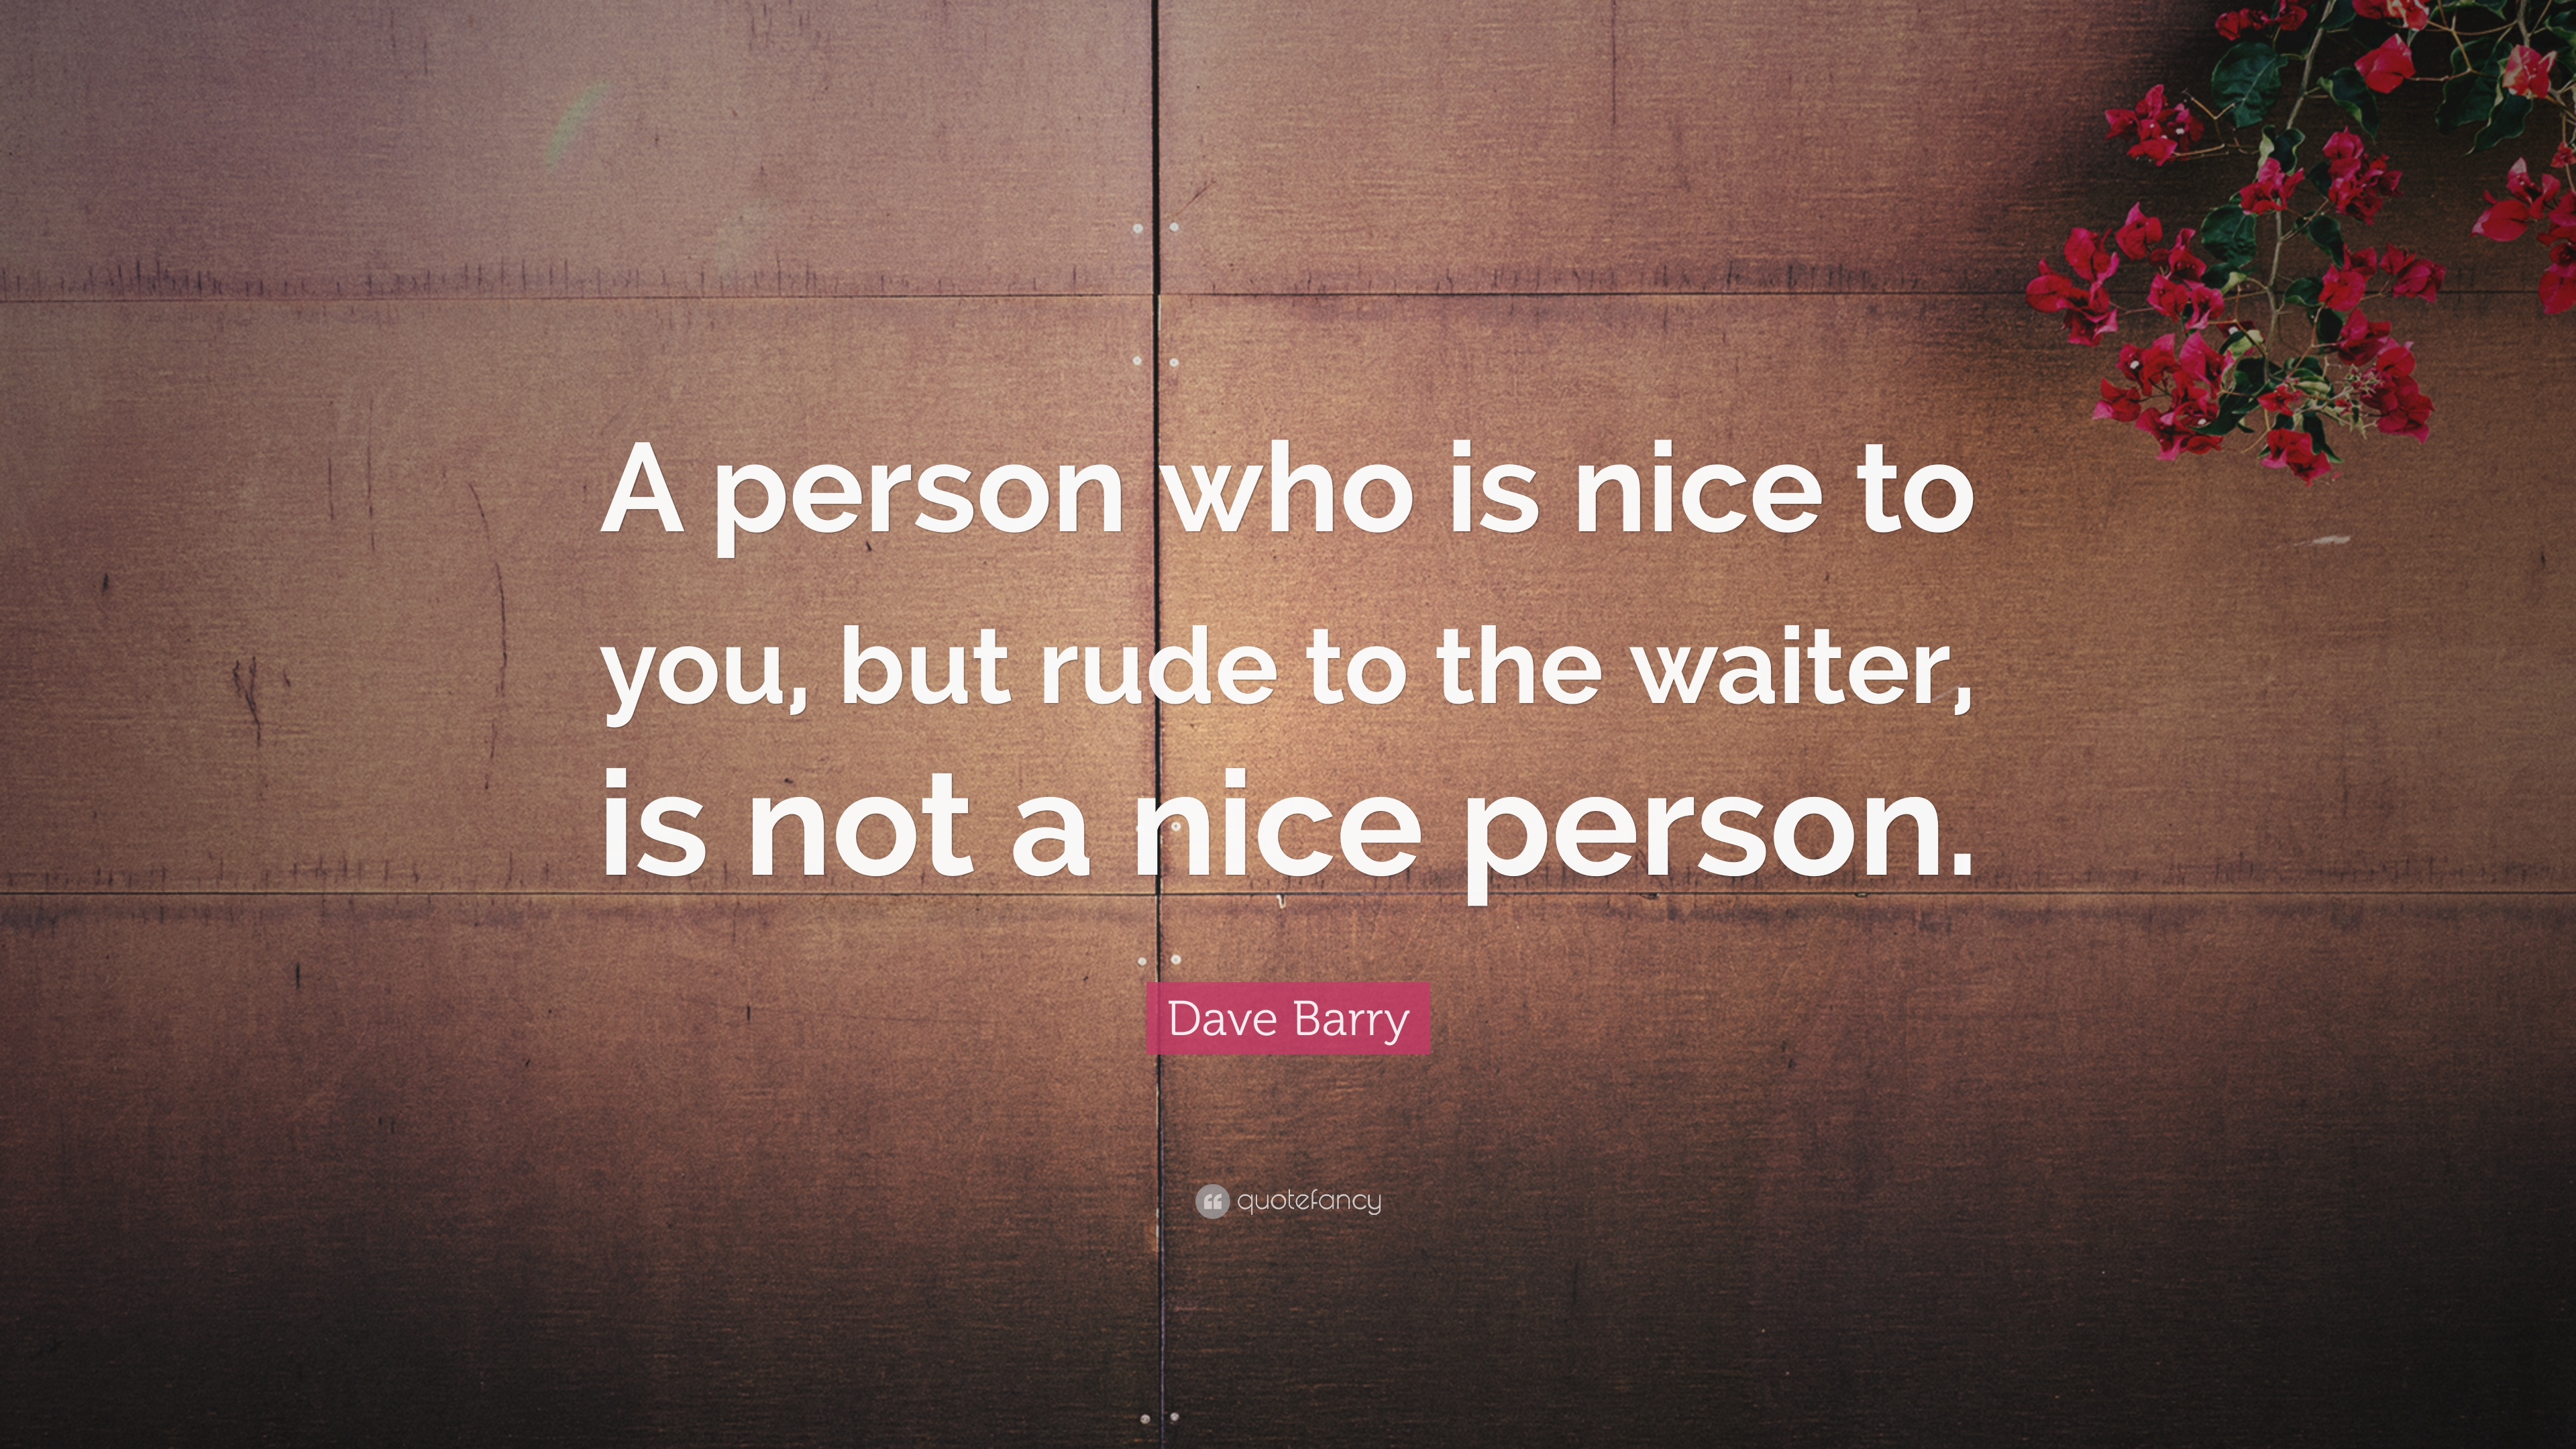 you are a nice person